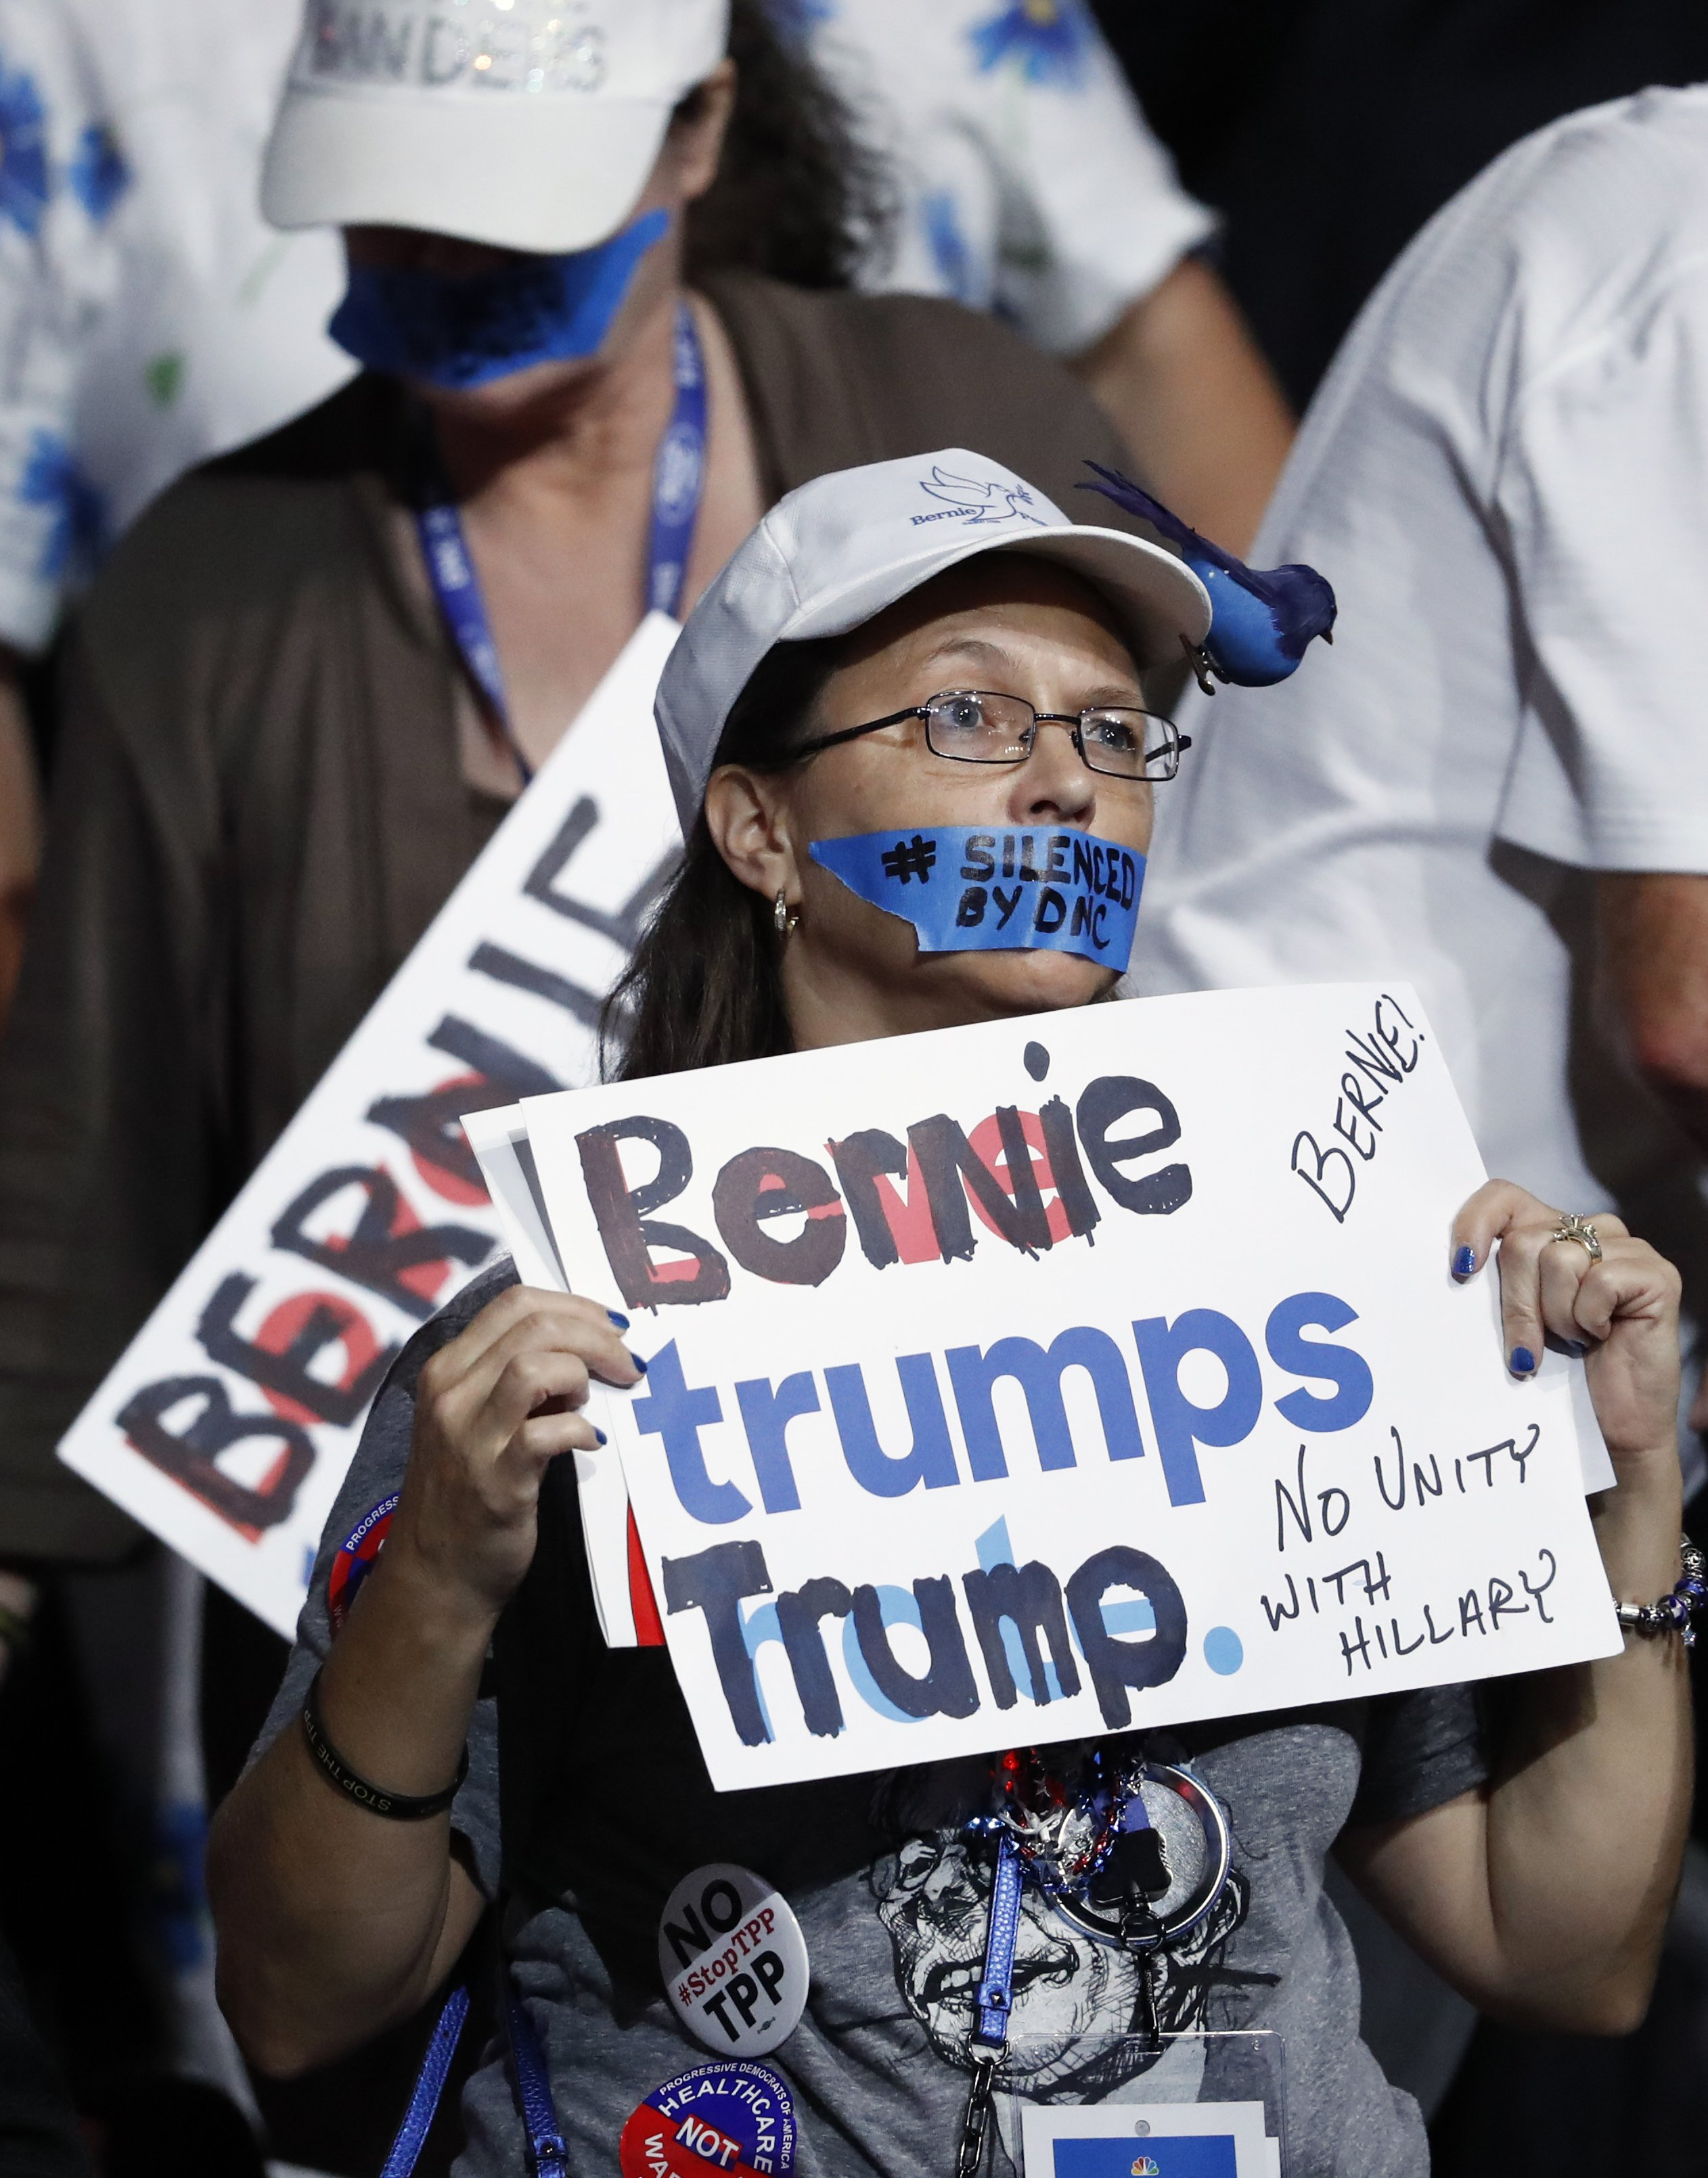 A supporter of former Democratic presidential candidate Sen. Bernie Sanders, I-Vt., protests during the first day of the Democratic National Convention in Philadelphia on July 25, 2016.